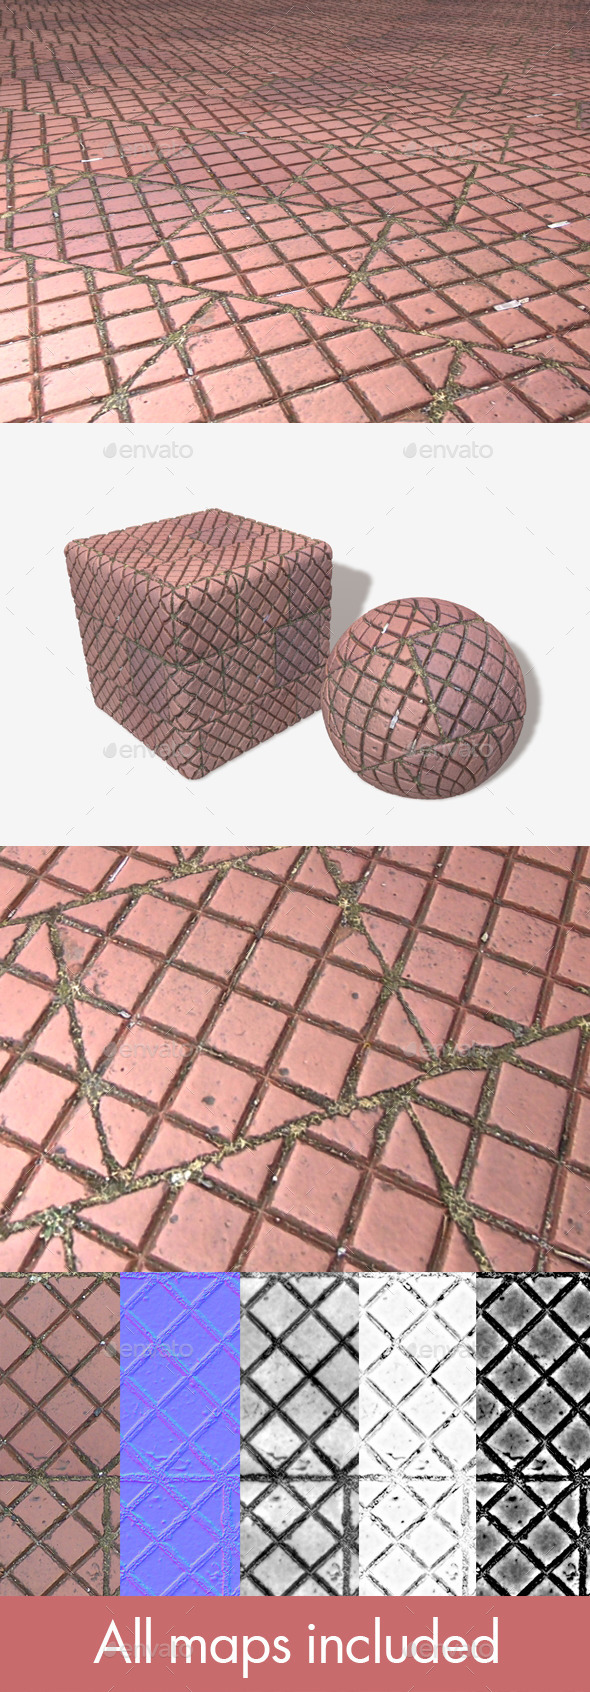 3DOcean Pavement Patterned Tile Seamless Texture 11494852